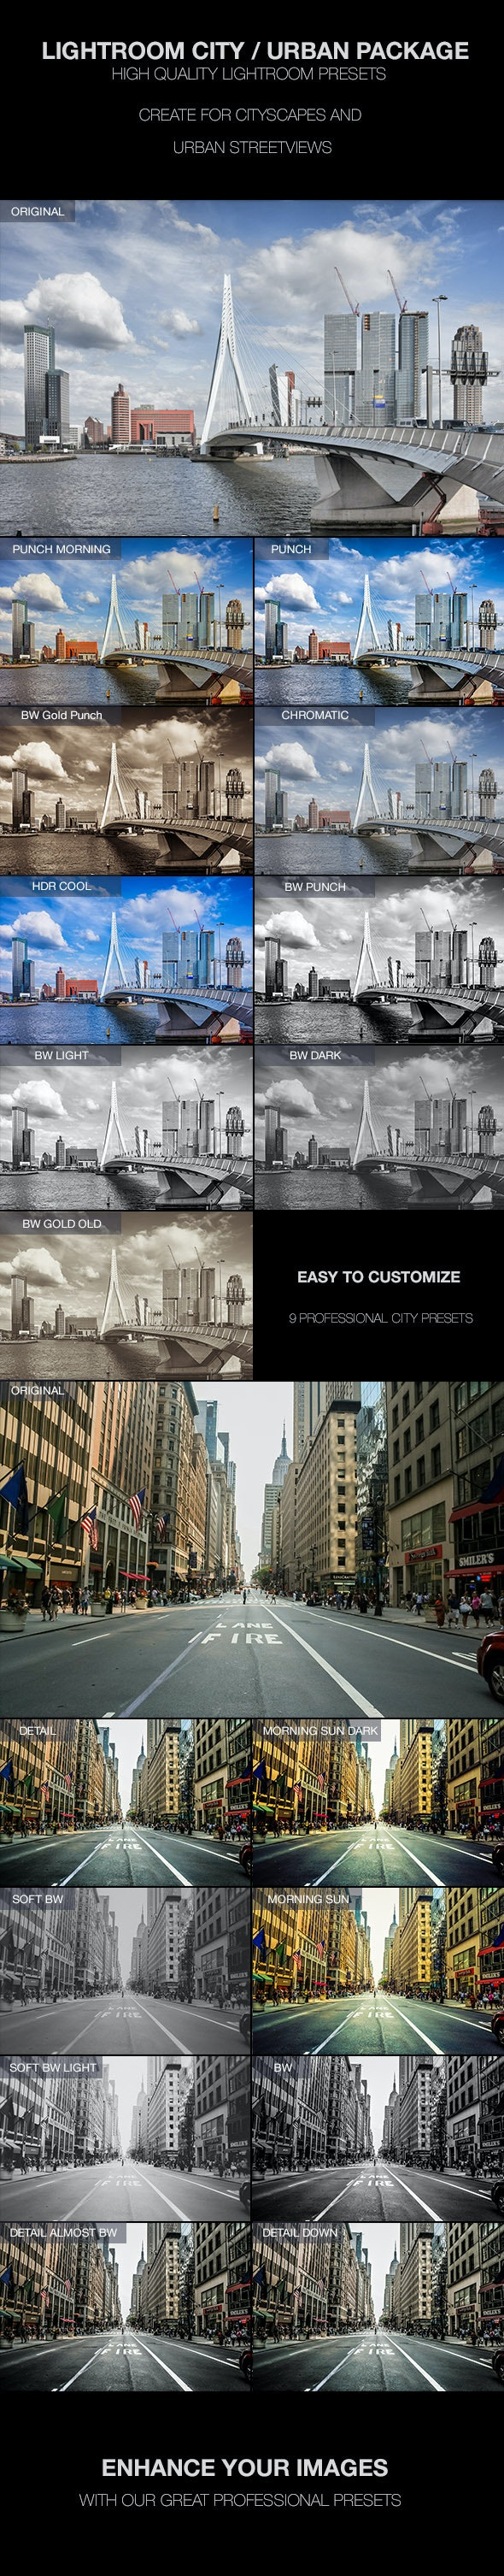 Cityscape and Urban Lightroom Presets - Landscape Lightroom Presets